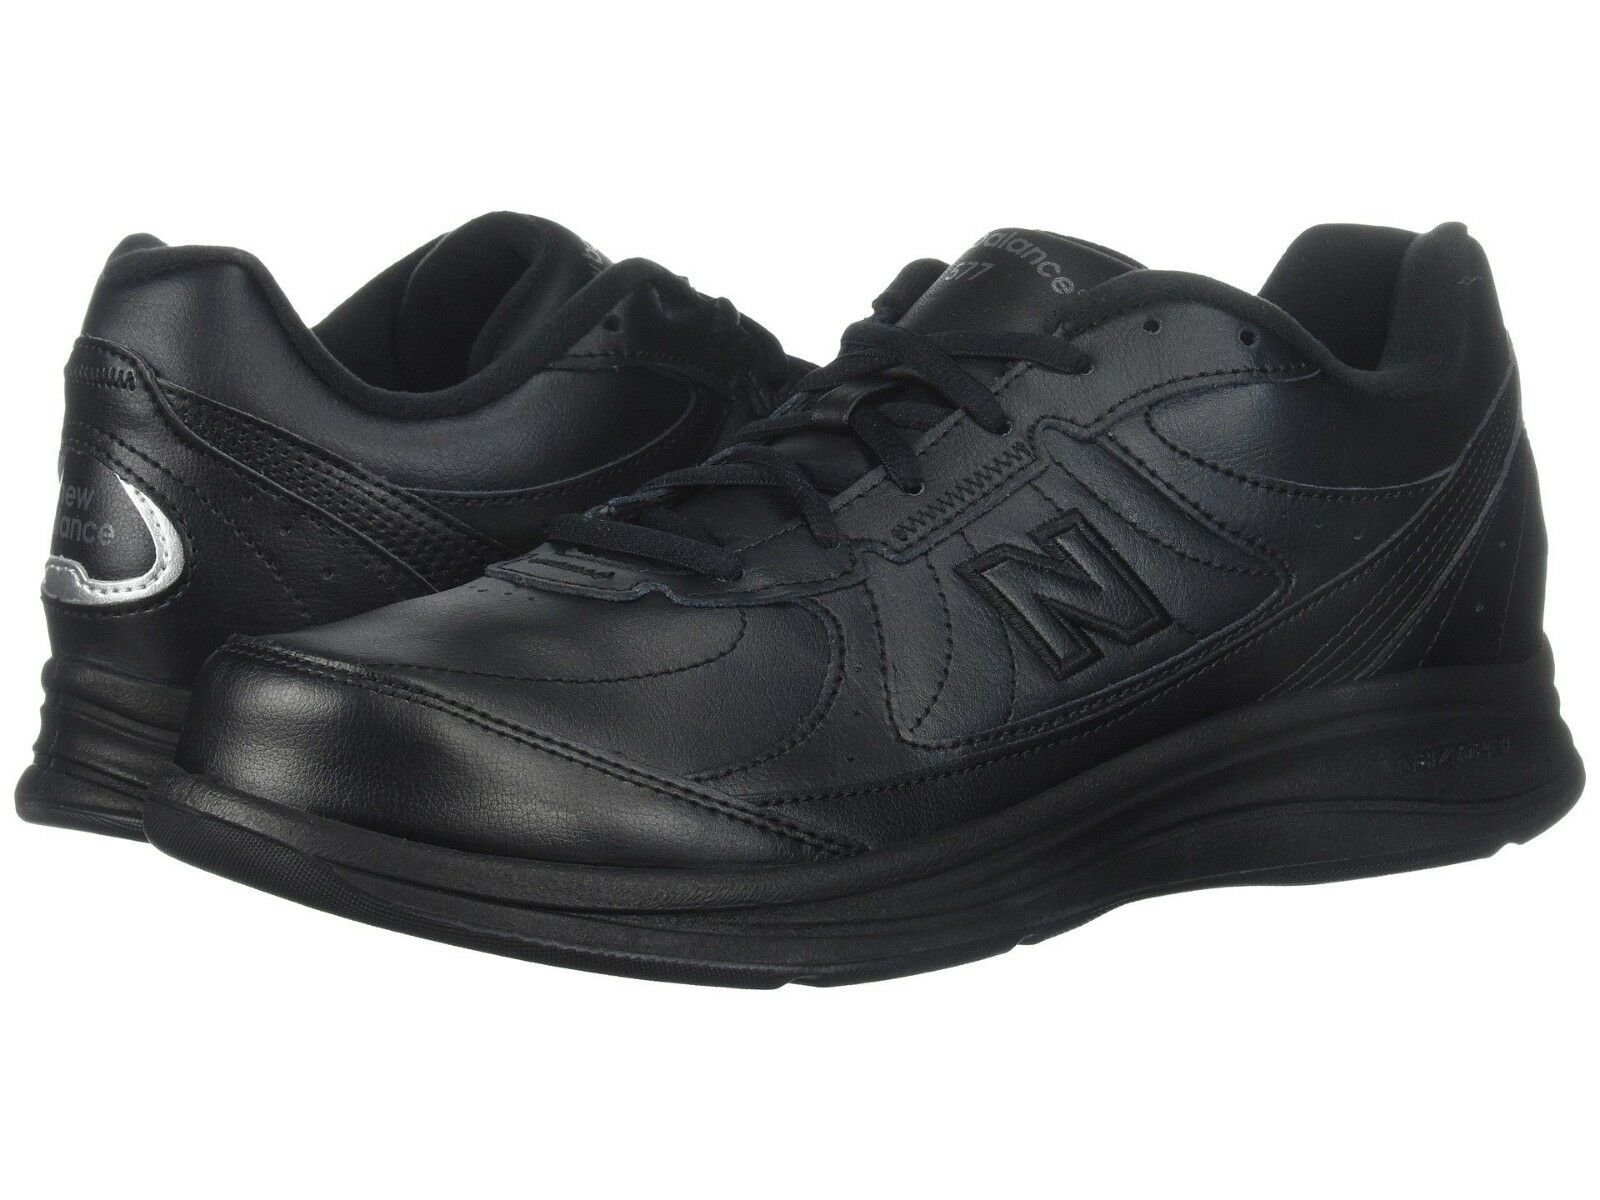 NEW Mens Mens Mens New Balance MW577 Black Leather Lace Up Walking shoes AUTHENTIC IN BOX e8d46c